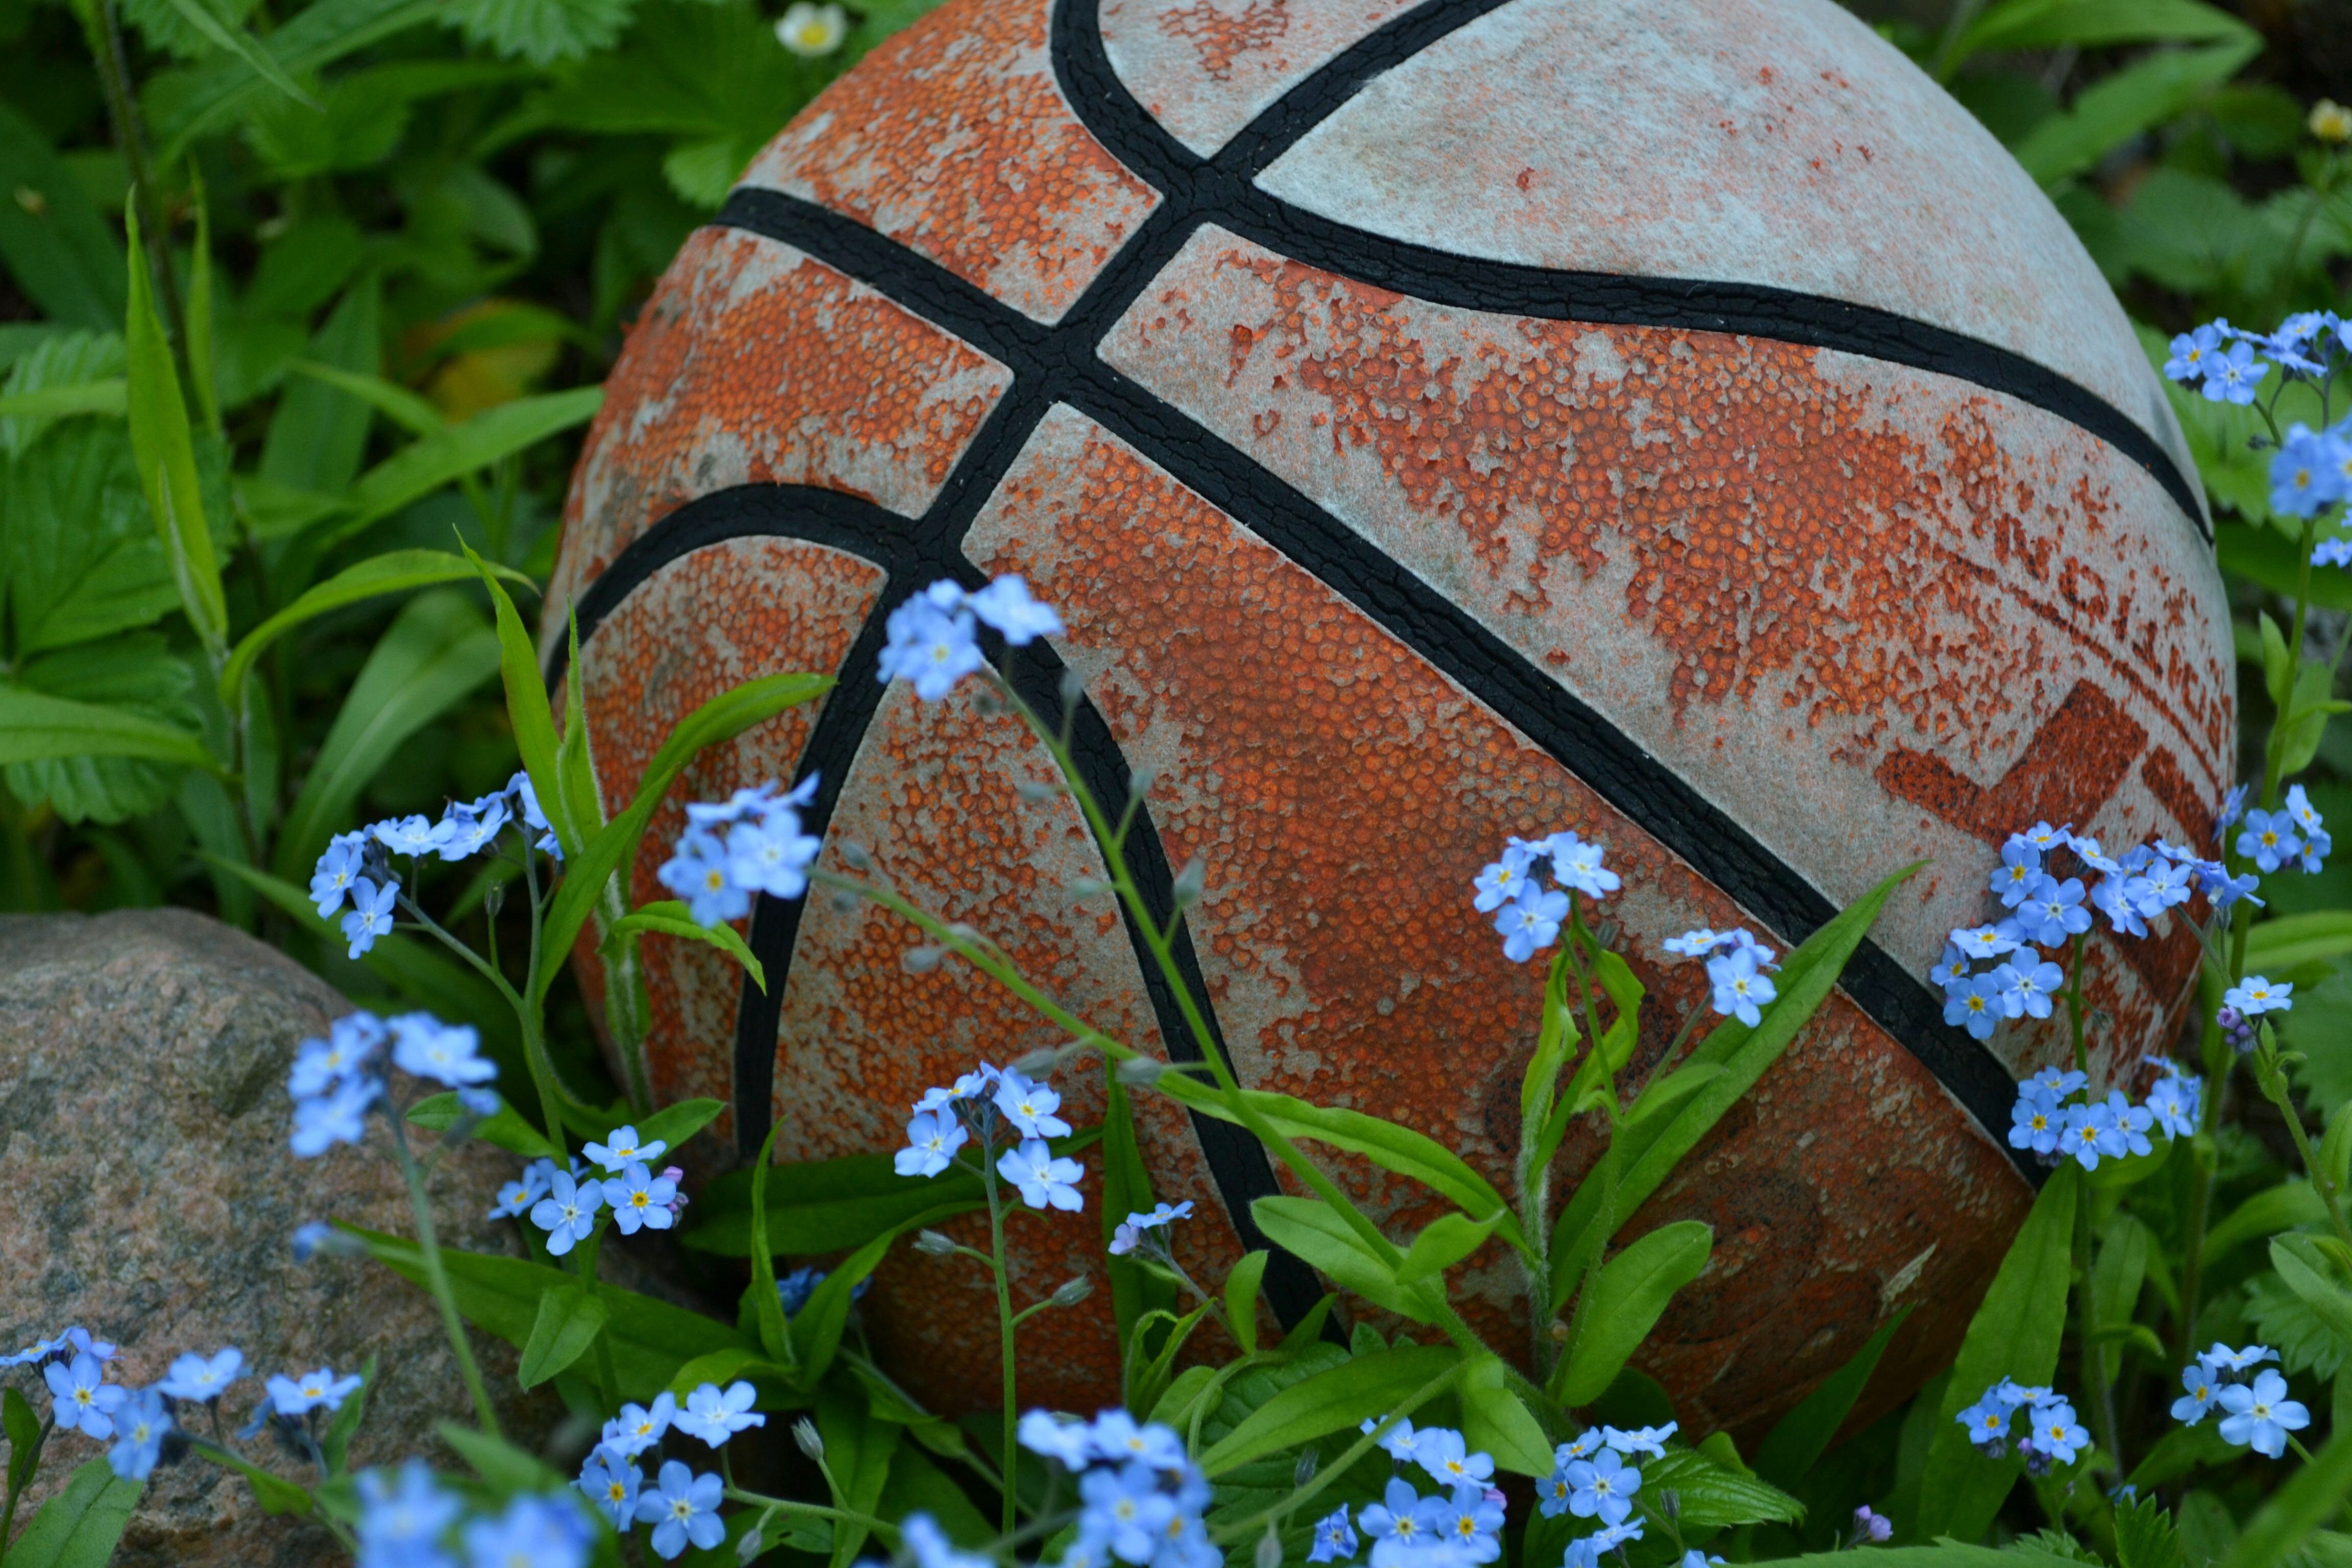 Joy in unexpected places, family, finding joy, finding peace, finding support, how to cope with family trauma,joy, Respite, soothe the soul, support for the terminally ill, support network, surviving hard times, resilient, basket ball, playing ball with children, forget me not